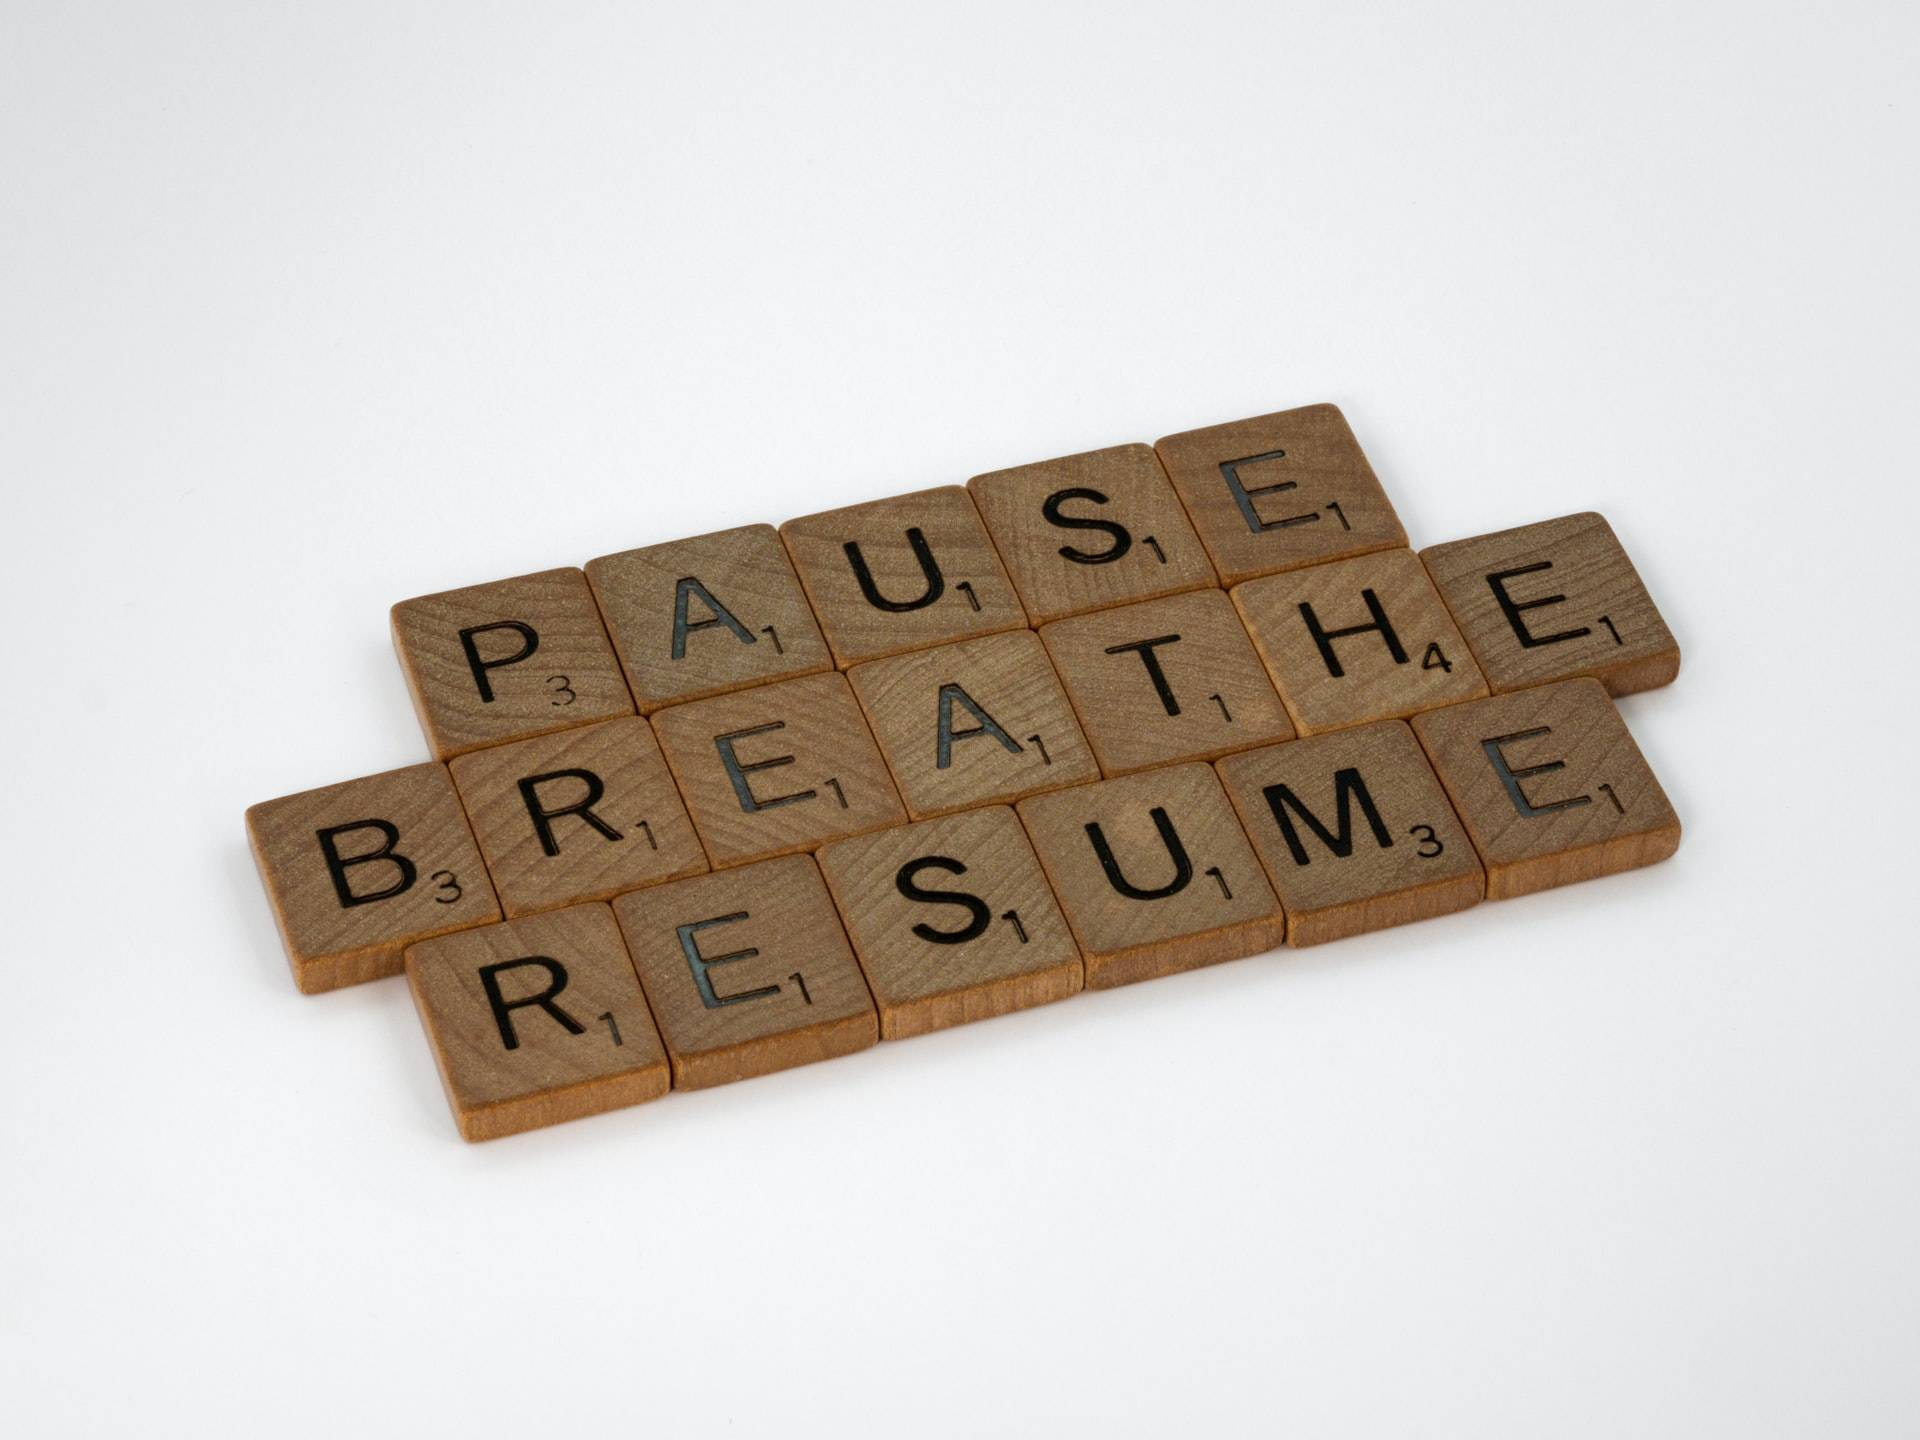 the words pause, breathe, resume written with scrabble letters